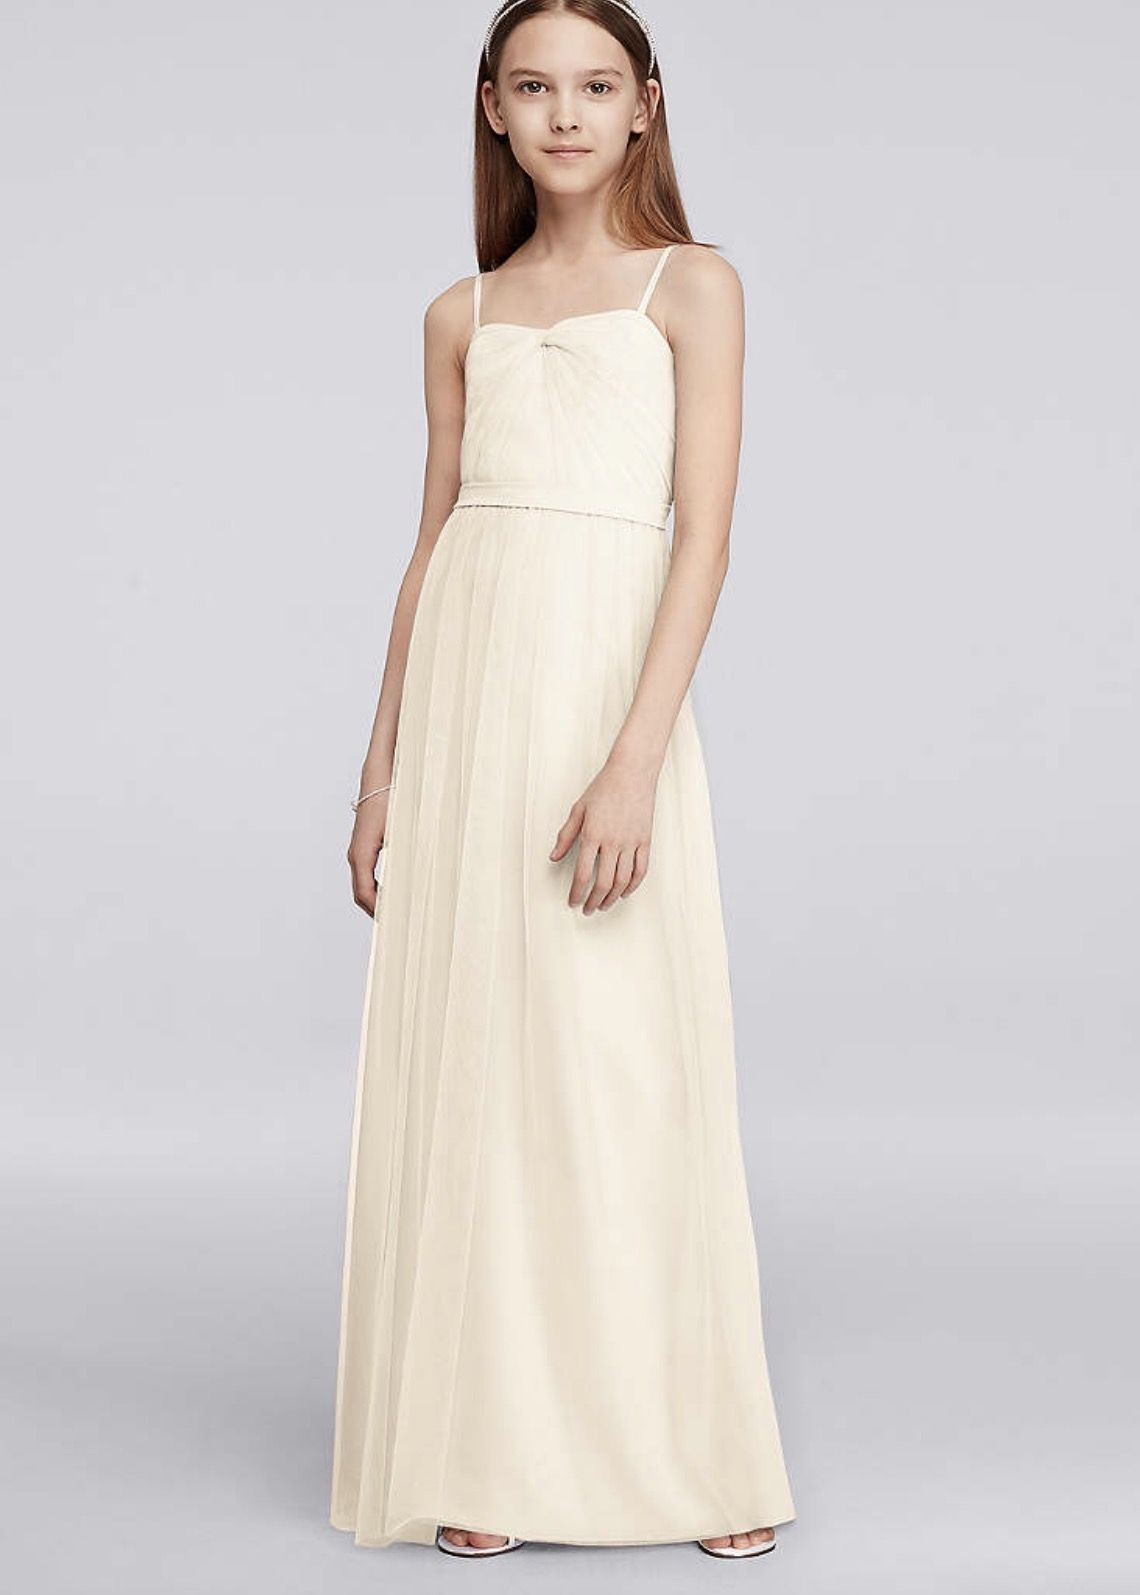 Maternity wedding dresses david's bridal  Pin by Lily Loubriel on The Big Day  Pinterest